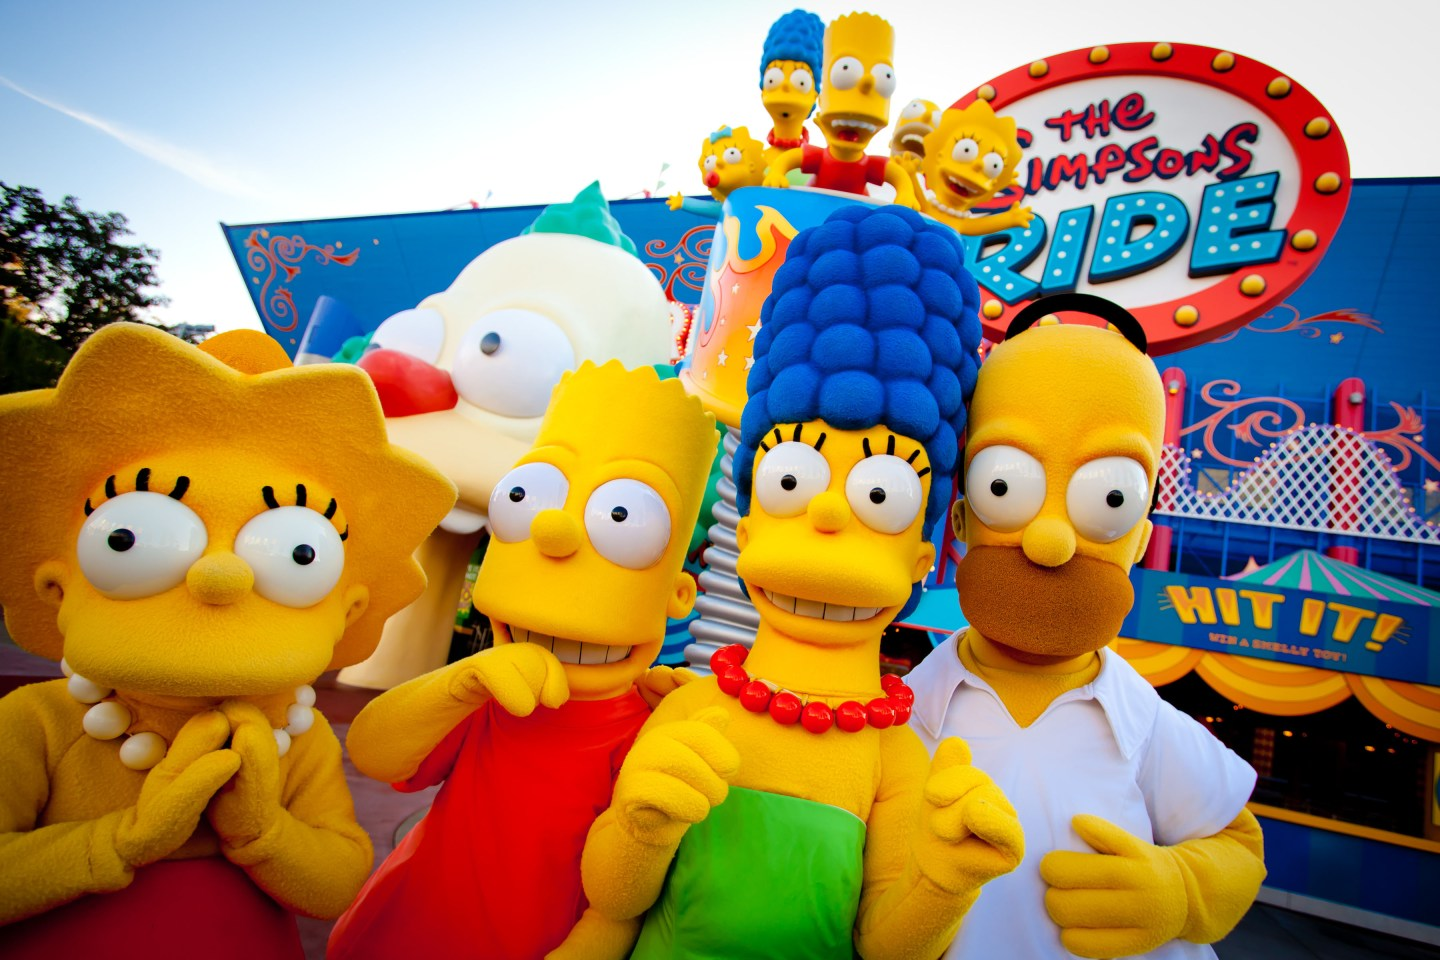 Can't Miss Attractions at Universal Studios The Simpsons Ride